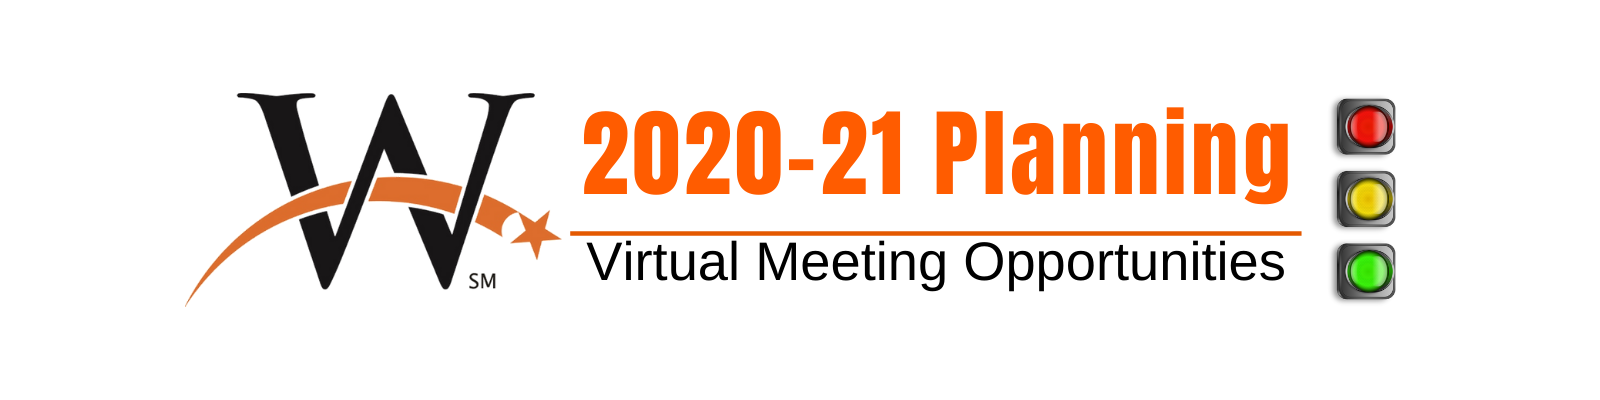 virtual meetings with supt registration form link